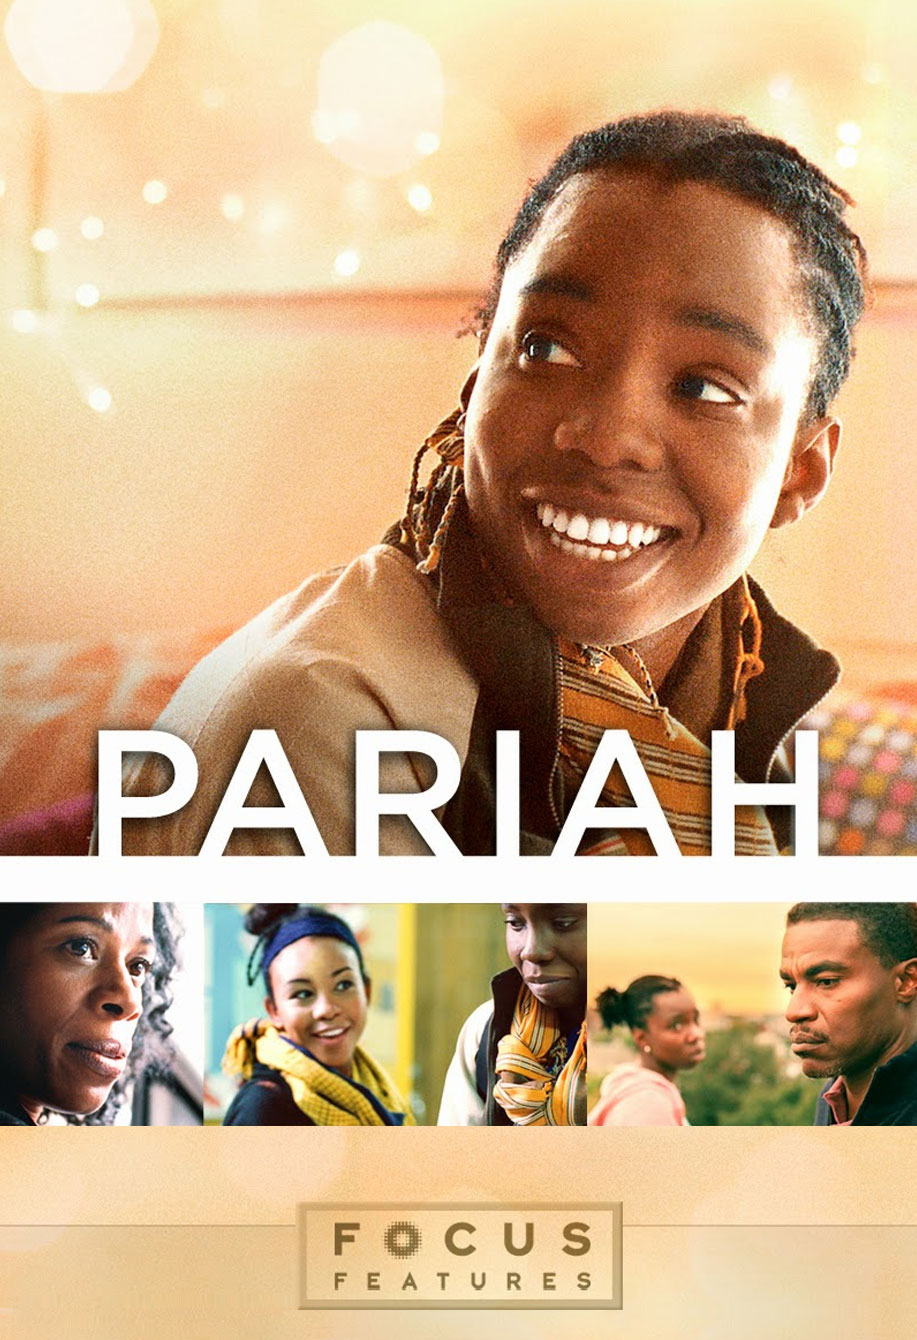 PARIAH, FOCUS FEATURES 2011 - Film, Music & Soundtrack